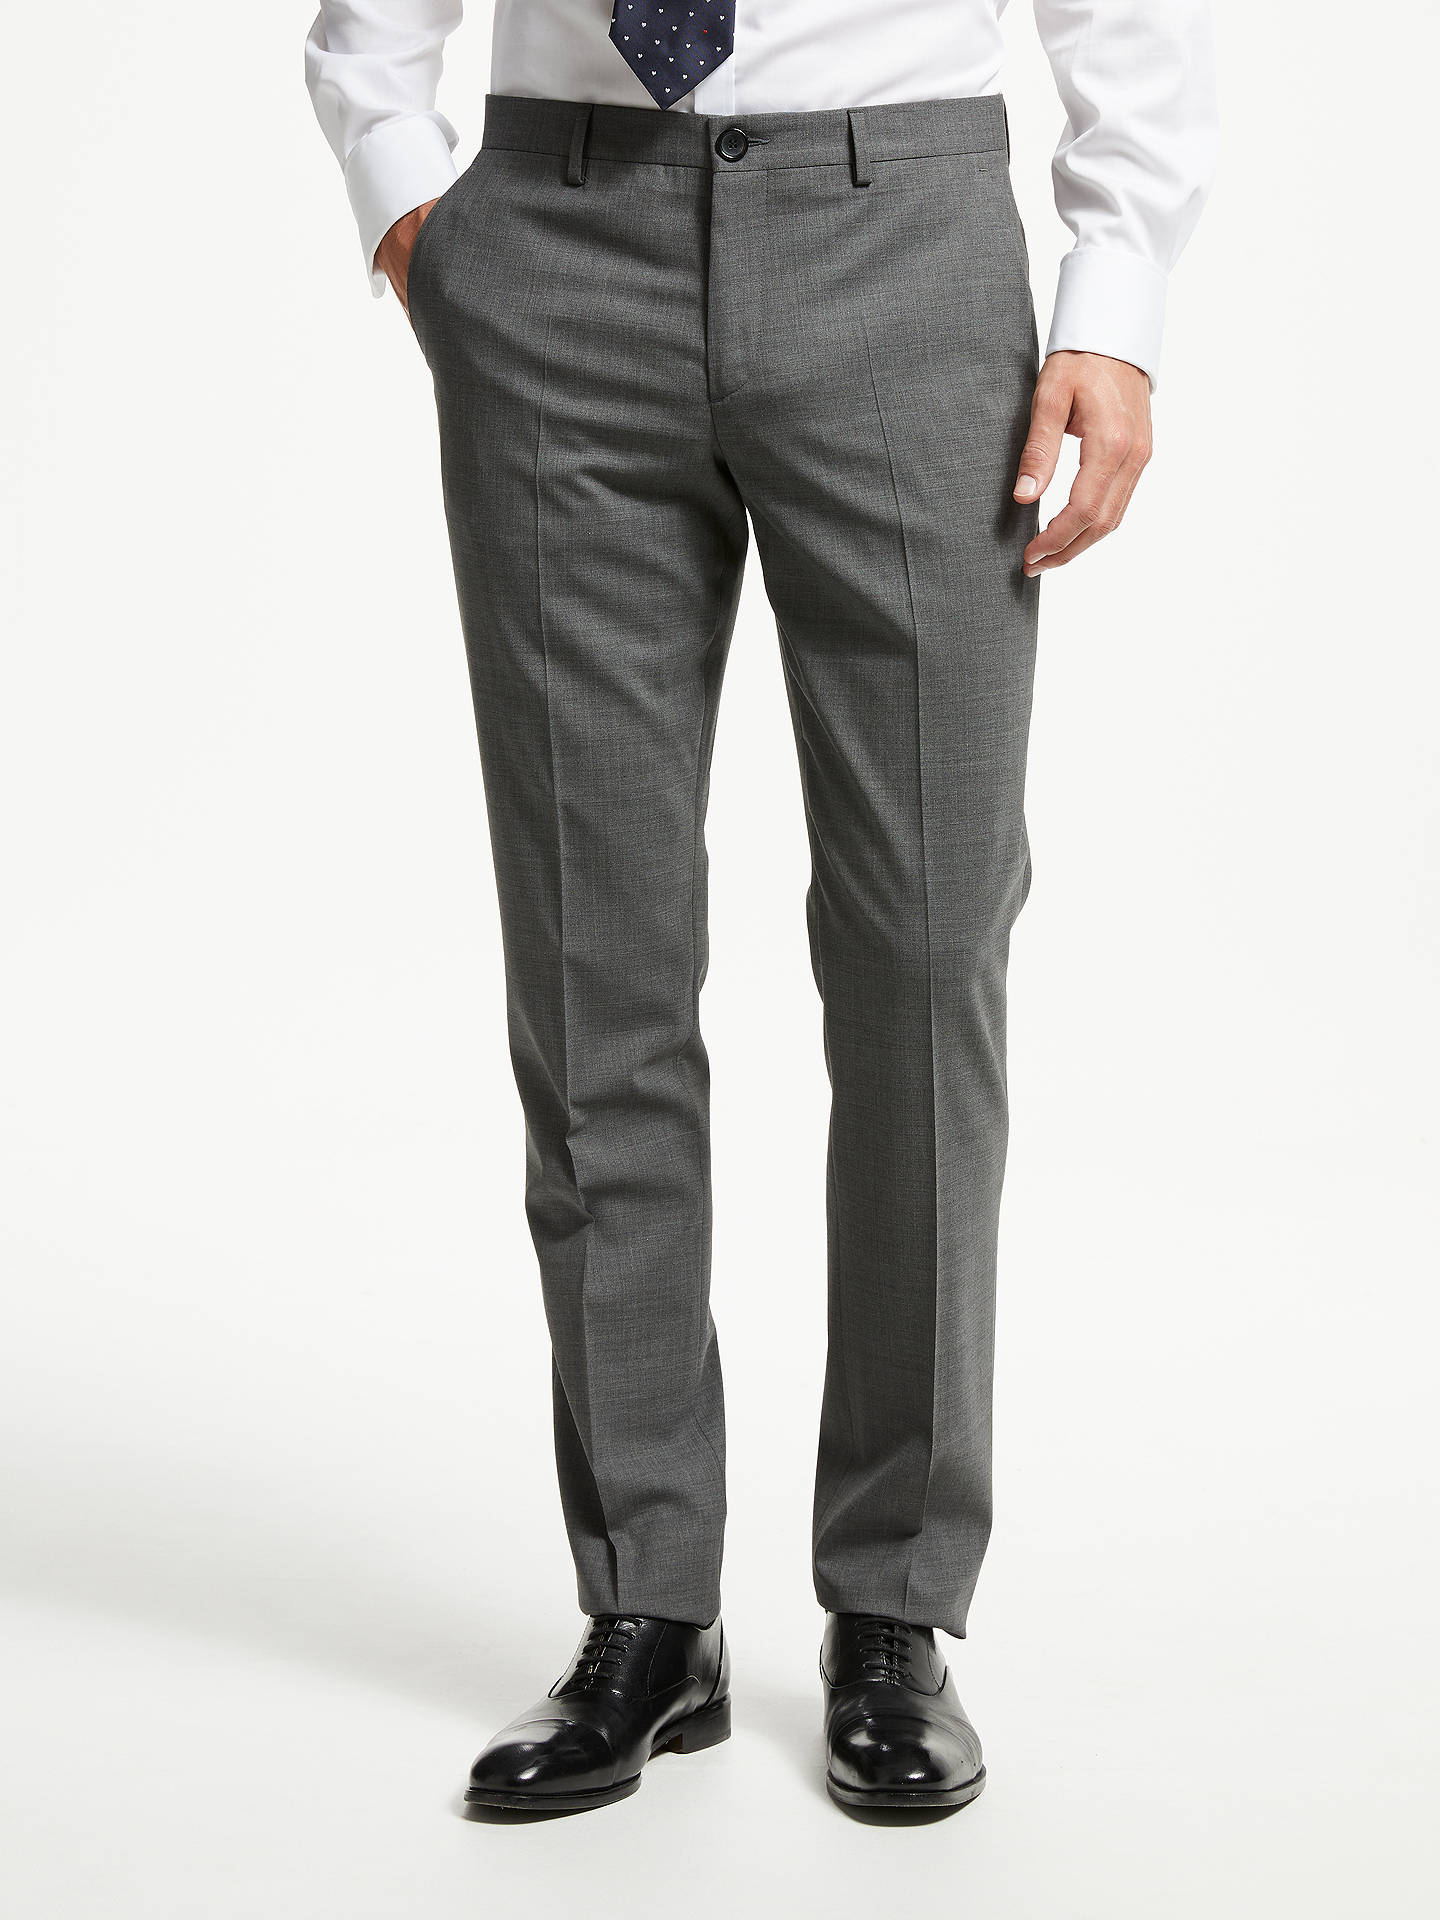 BuyPS Paul Smith Tailored Fit Suit Trousers, Grey, 30R Online at johnlewis.com